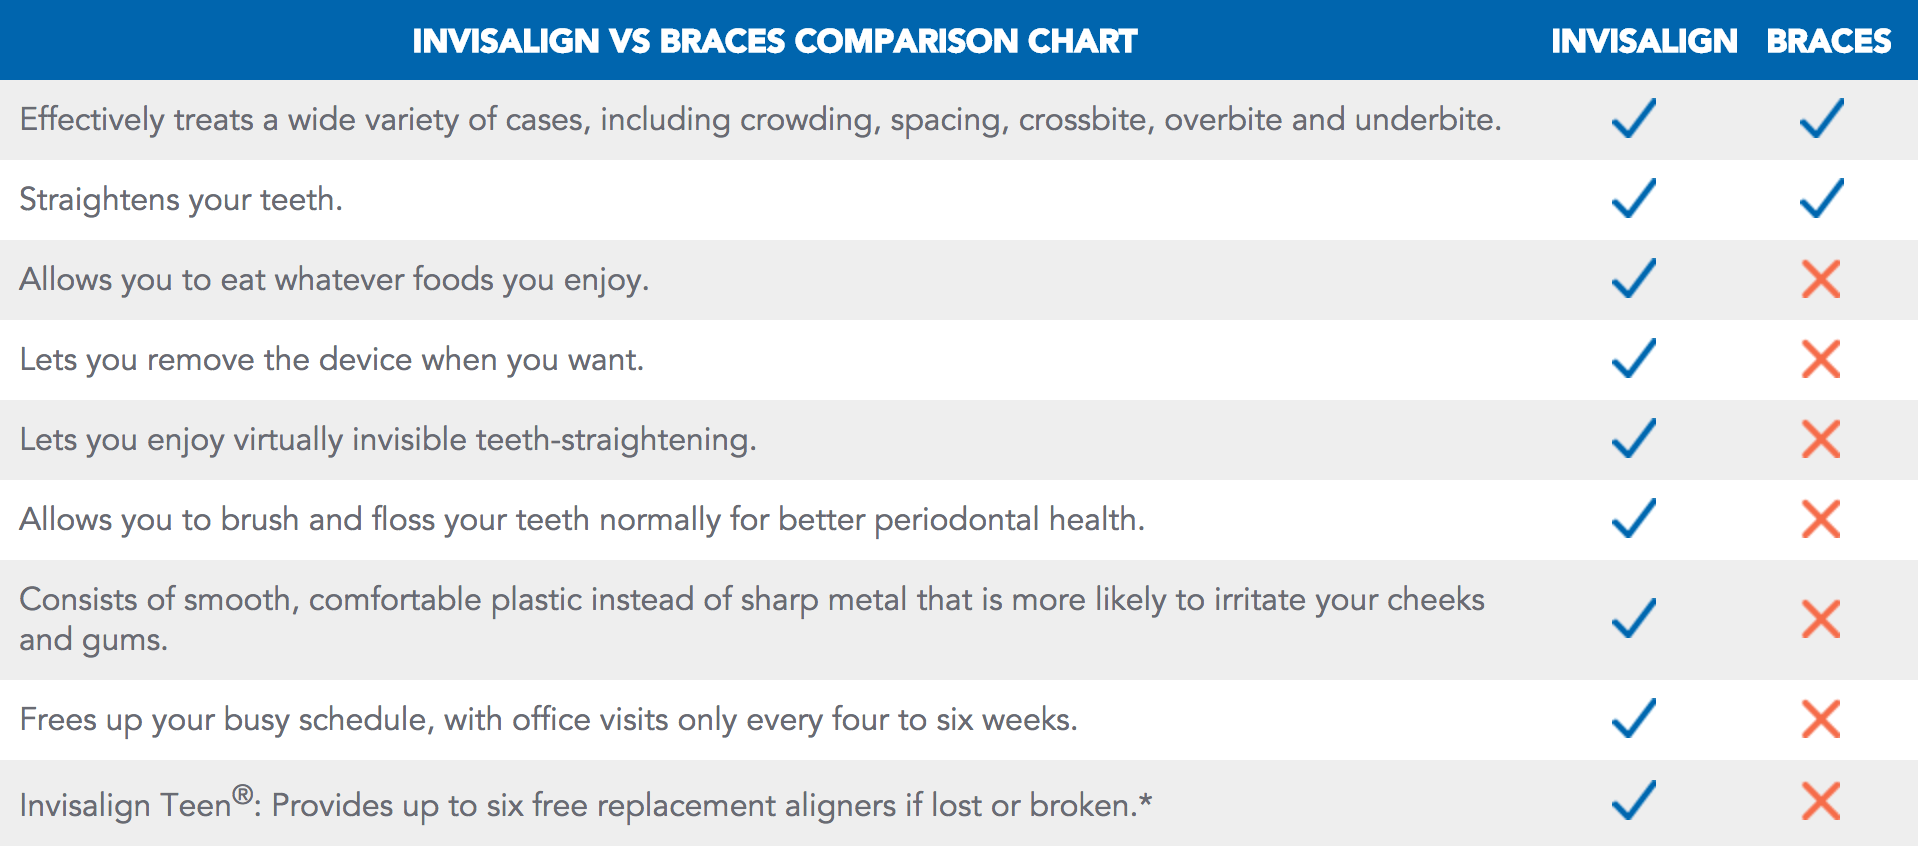 Invisalign Braces Comparison Chart